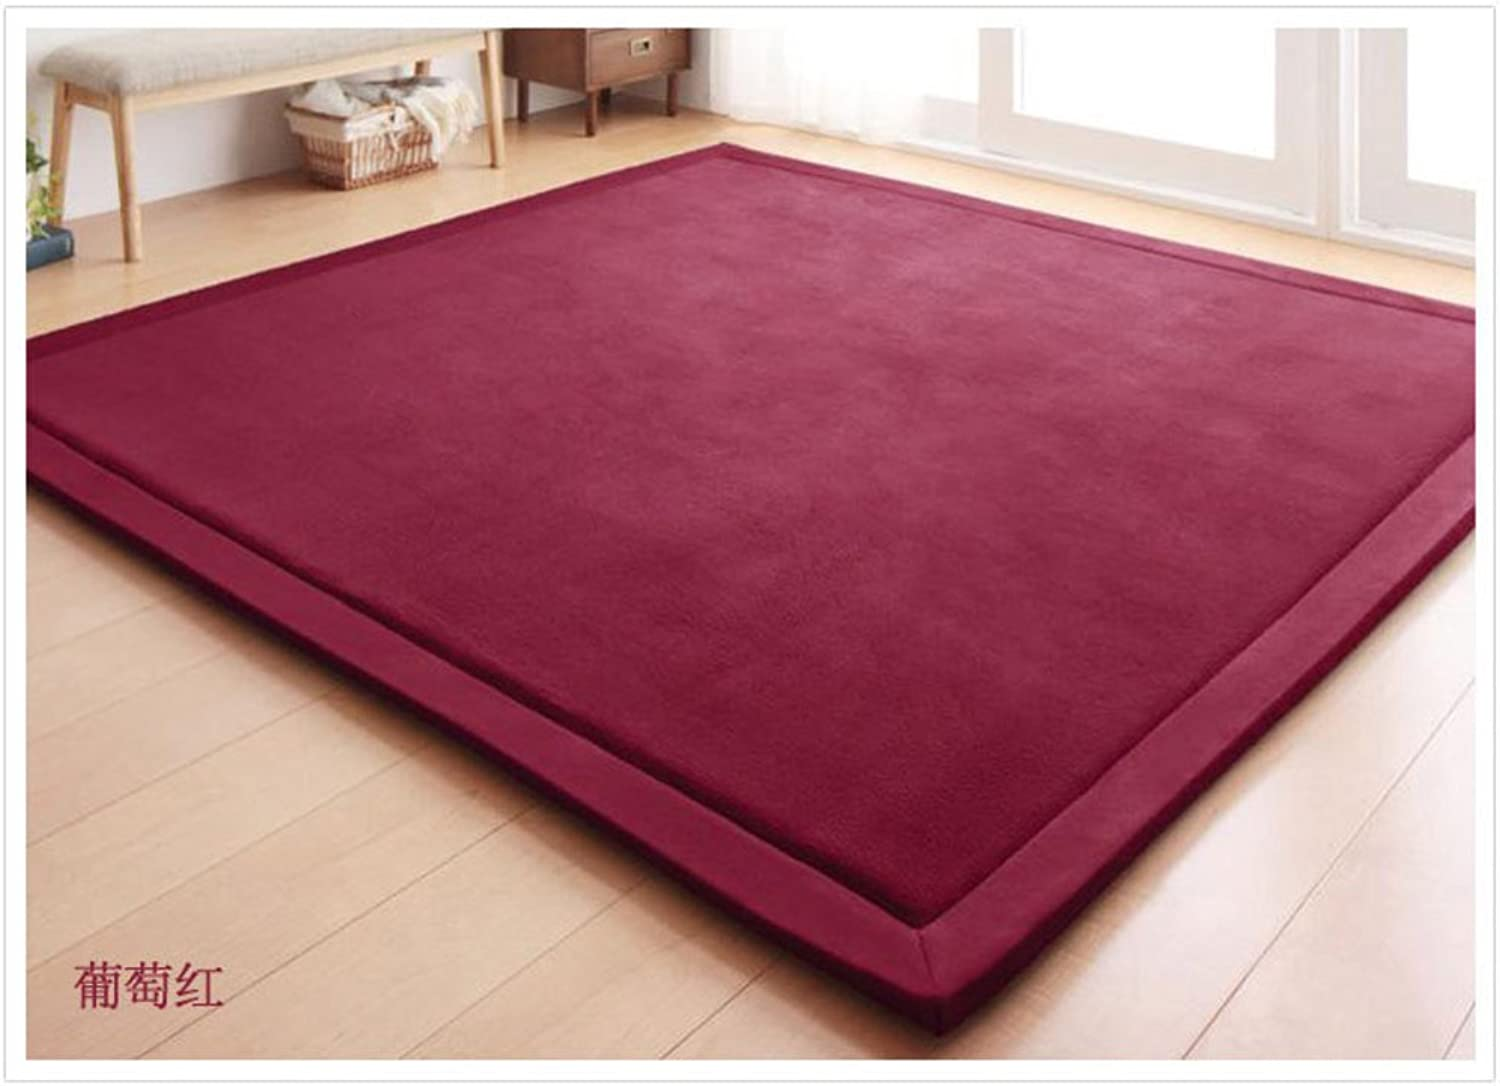 Tatami thickened plush living room floor mat carpet Creeping mats Bedroom mats-C 80x200cm(31x79inch)